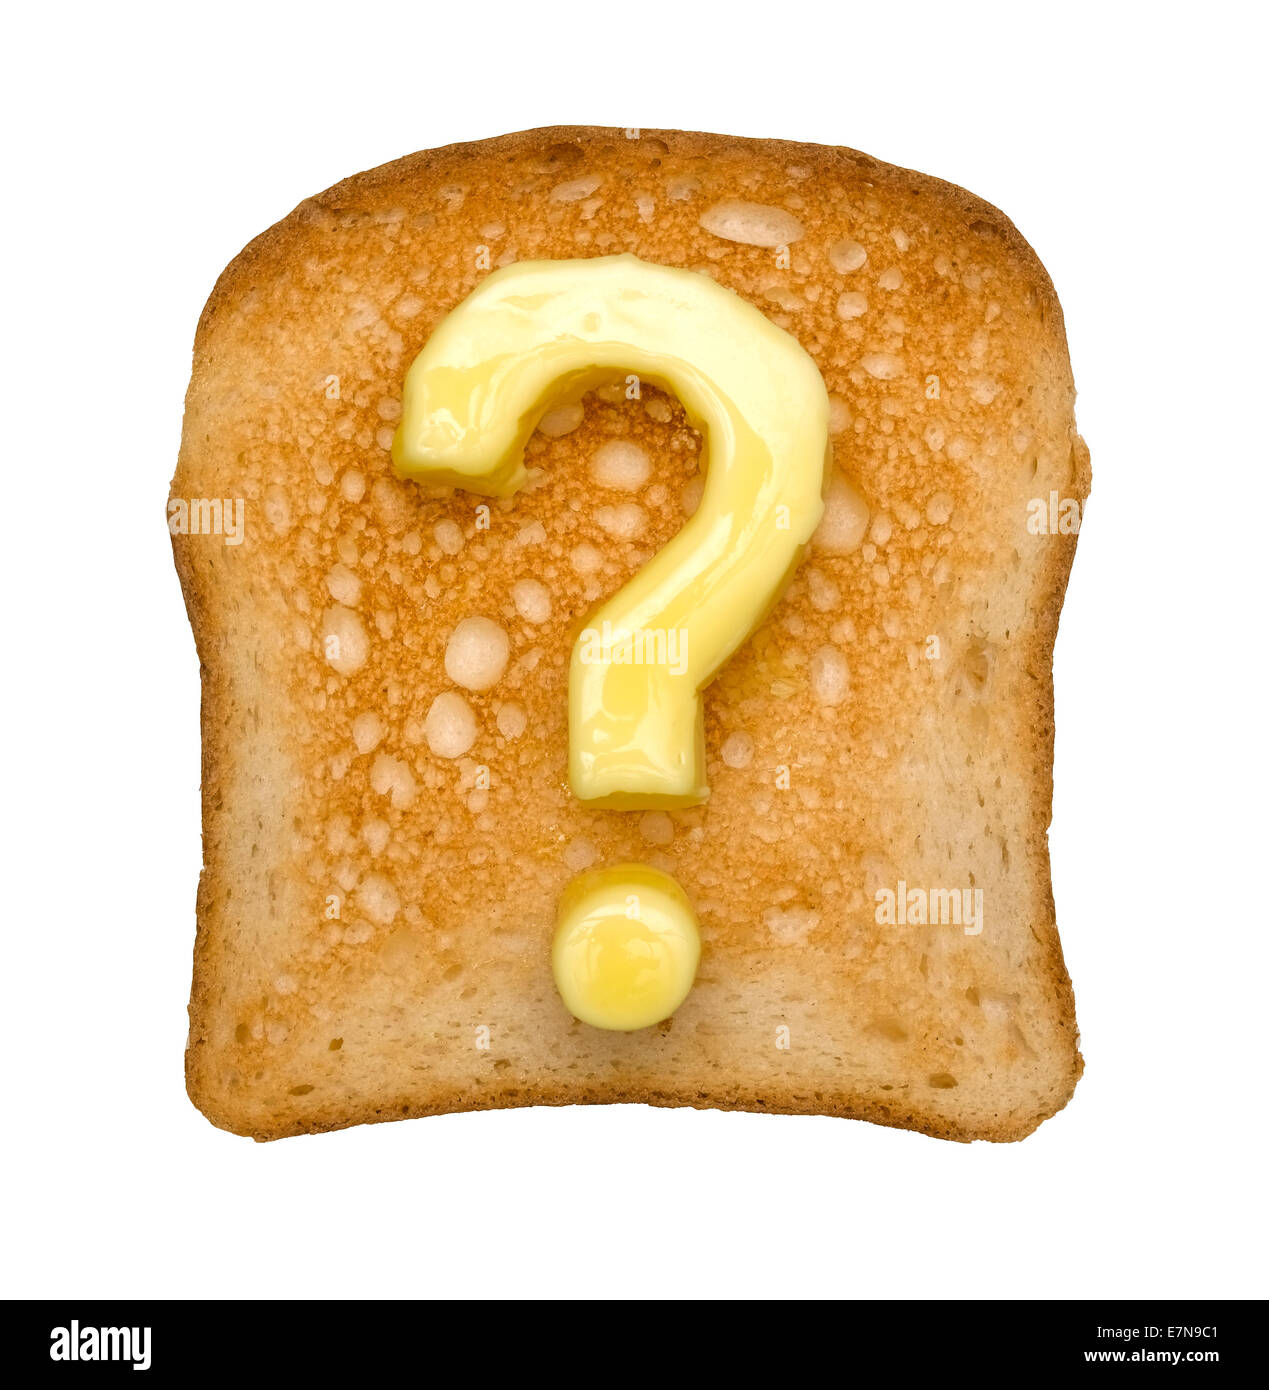 Toast and Question mark - Stock Image